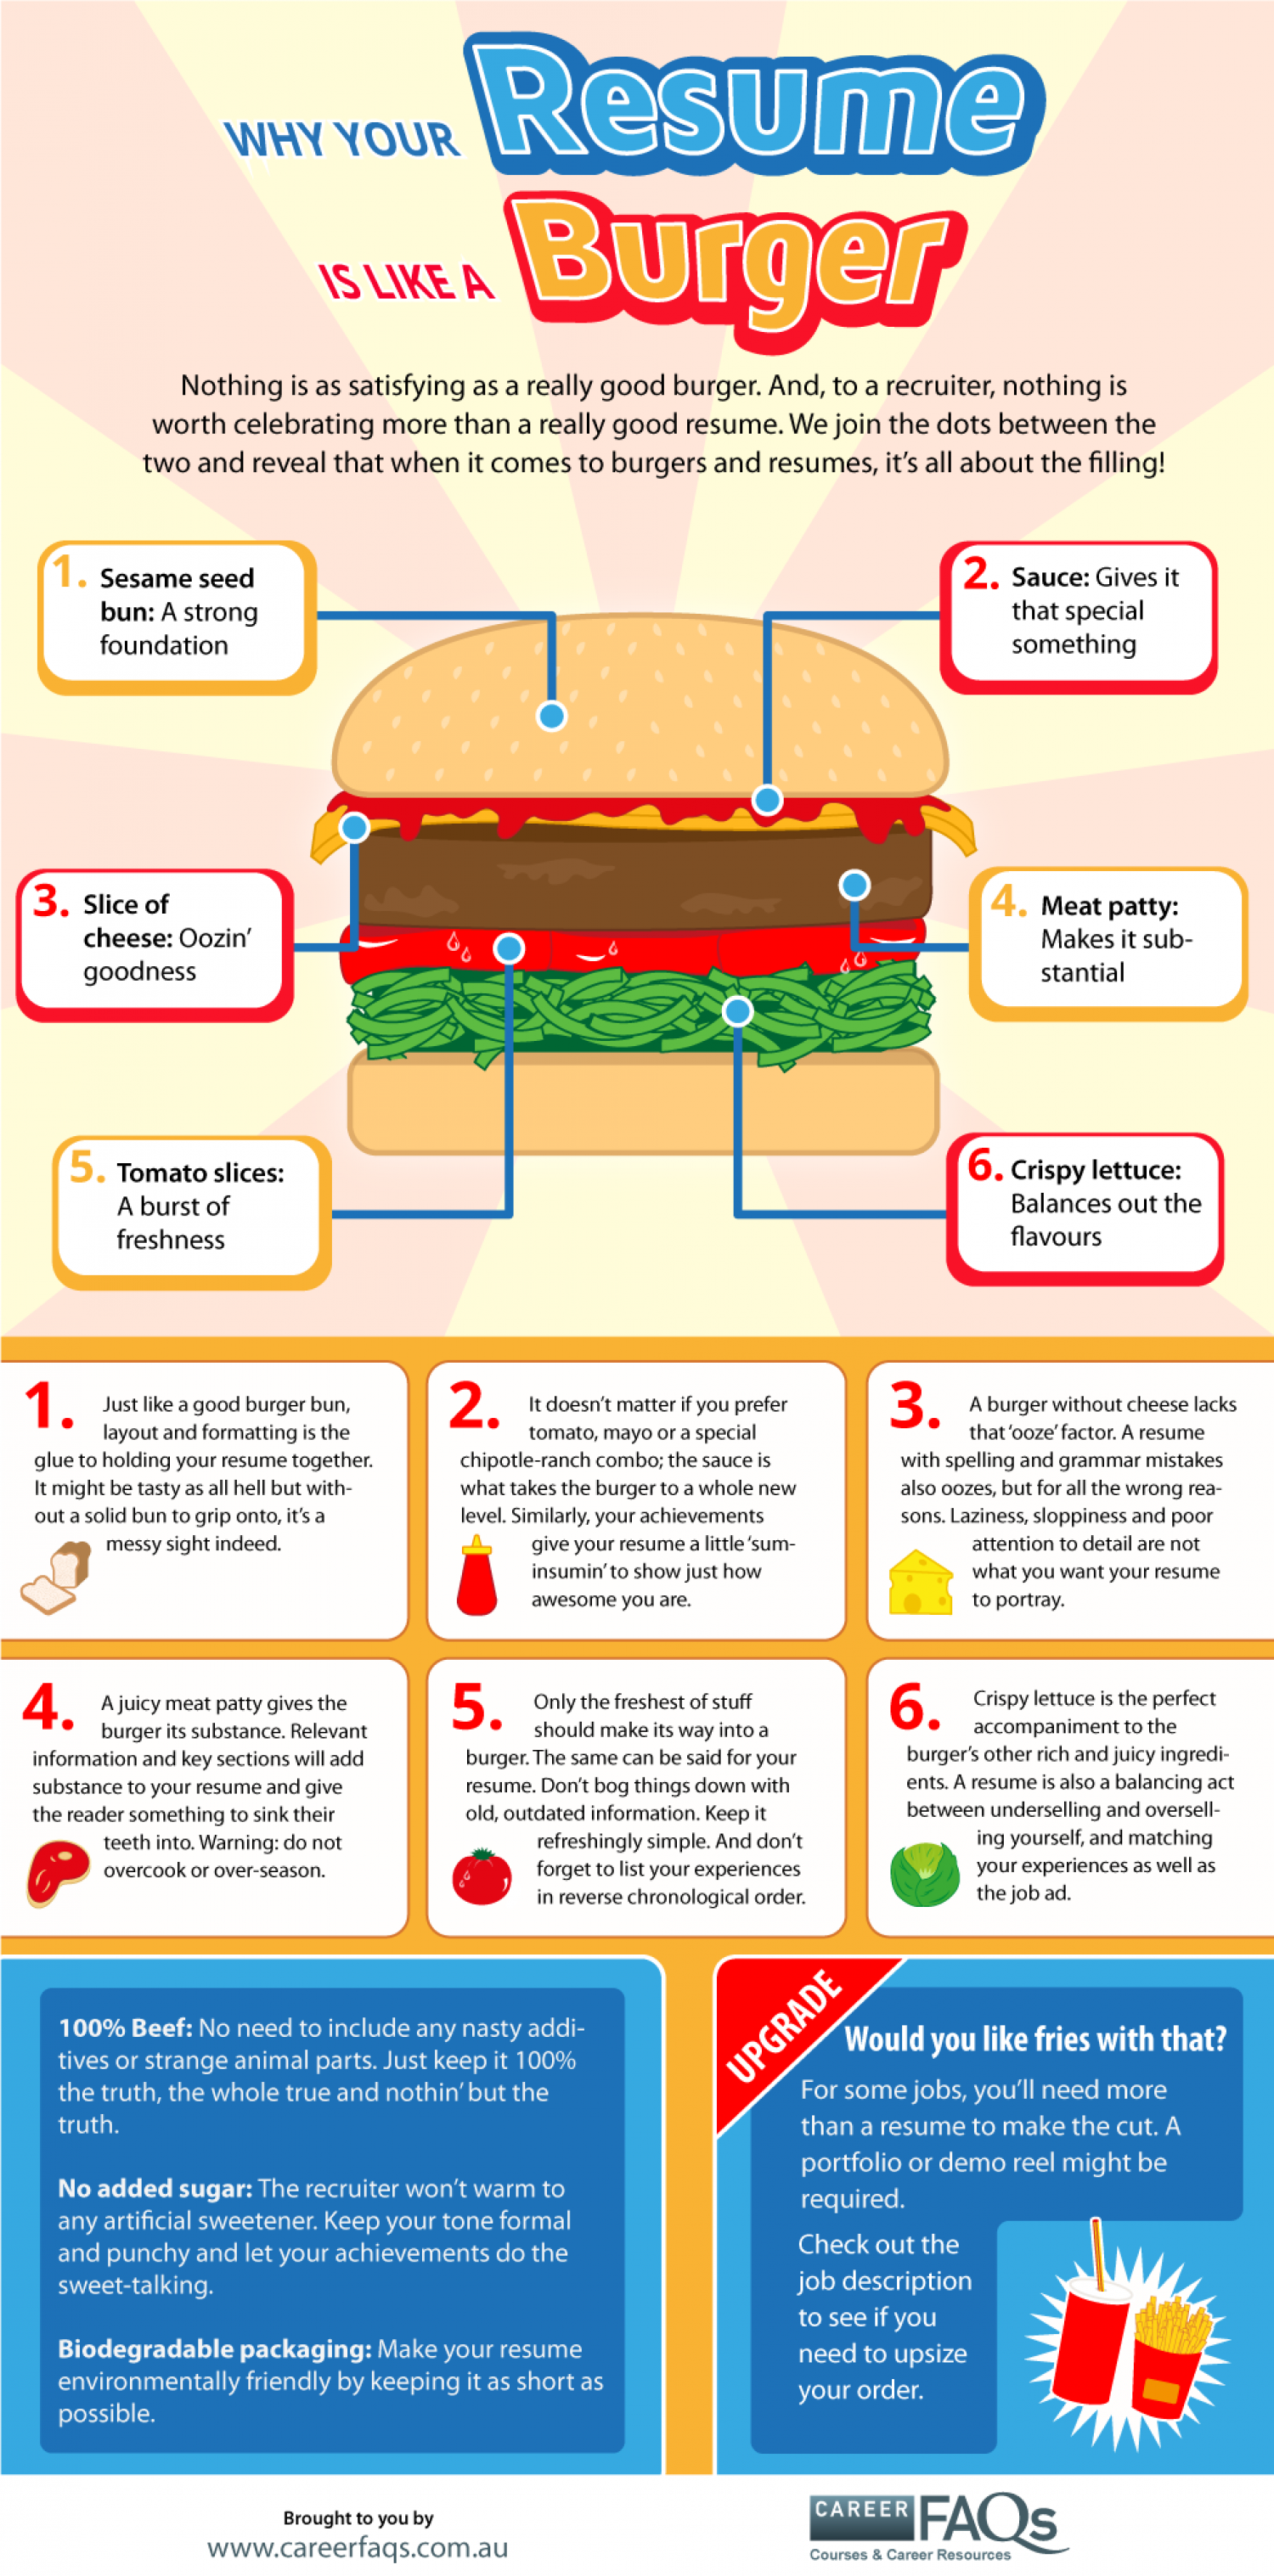 Resume Burger Infographic Infographic